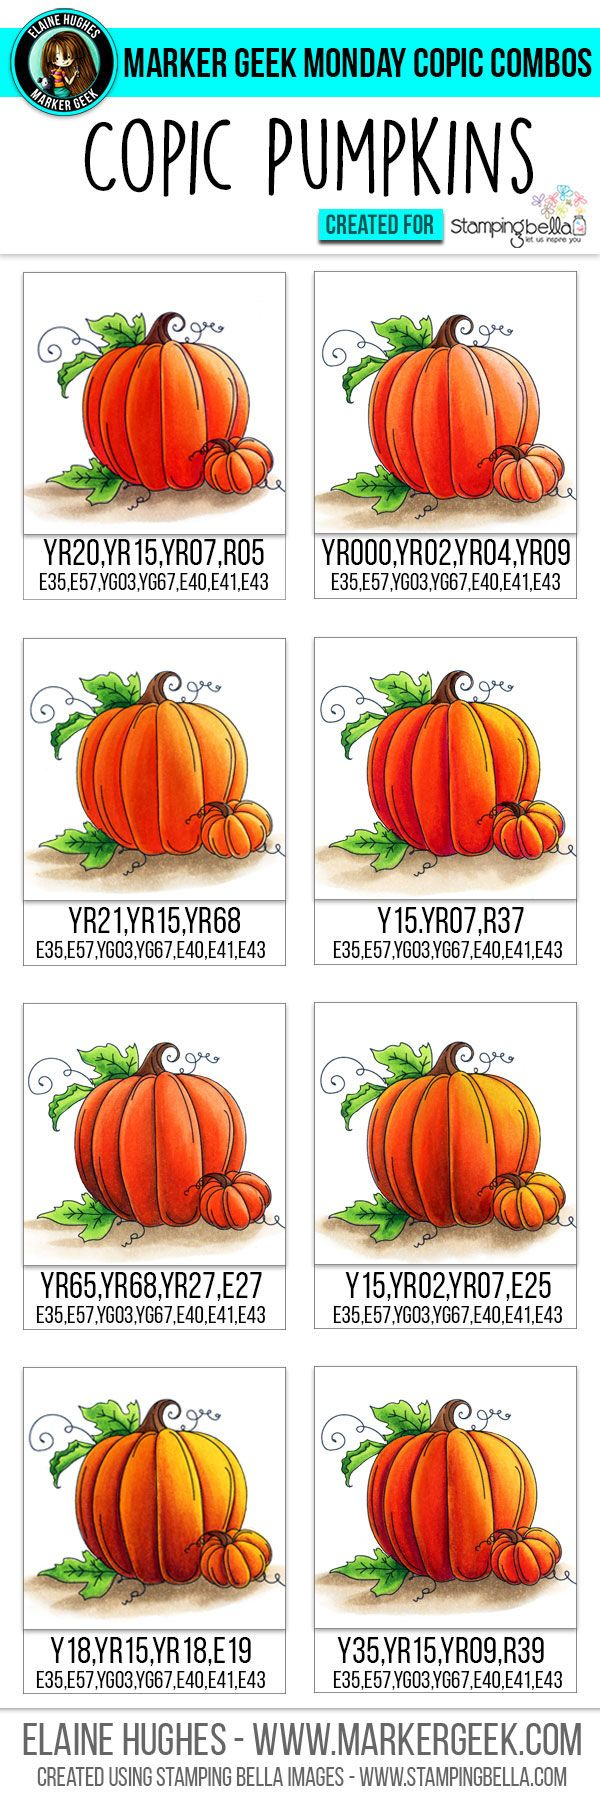 Marker Geek Monday Copic Colour Combos For Stamping Bella Set Of Pumpkins Stamp Set Click Through For A Downlo Copic Markers Tutorial Copic Copic Marker Art